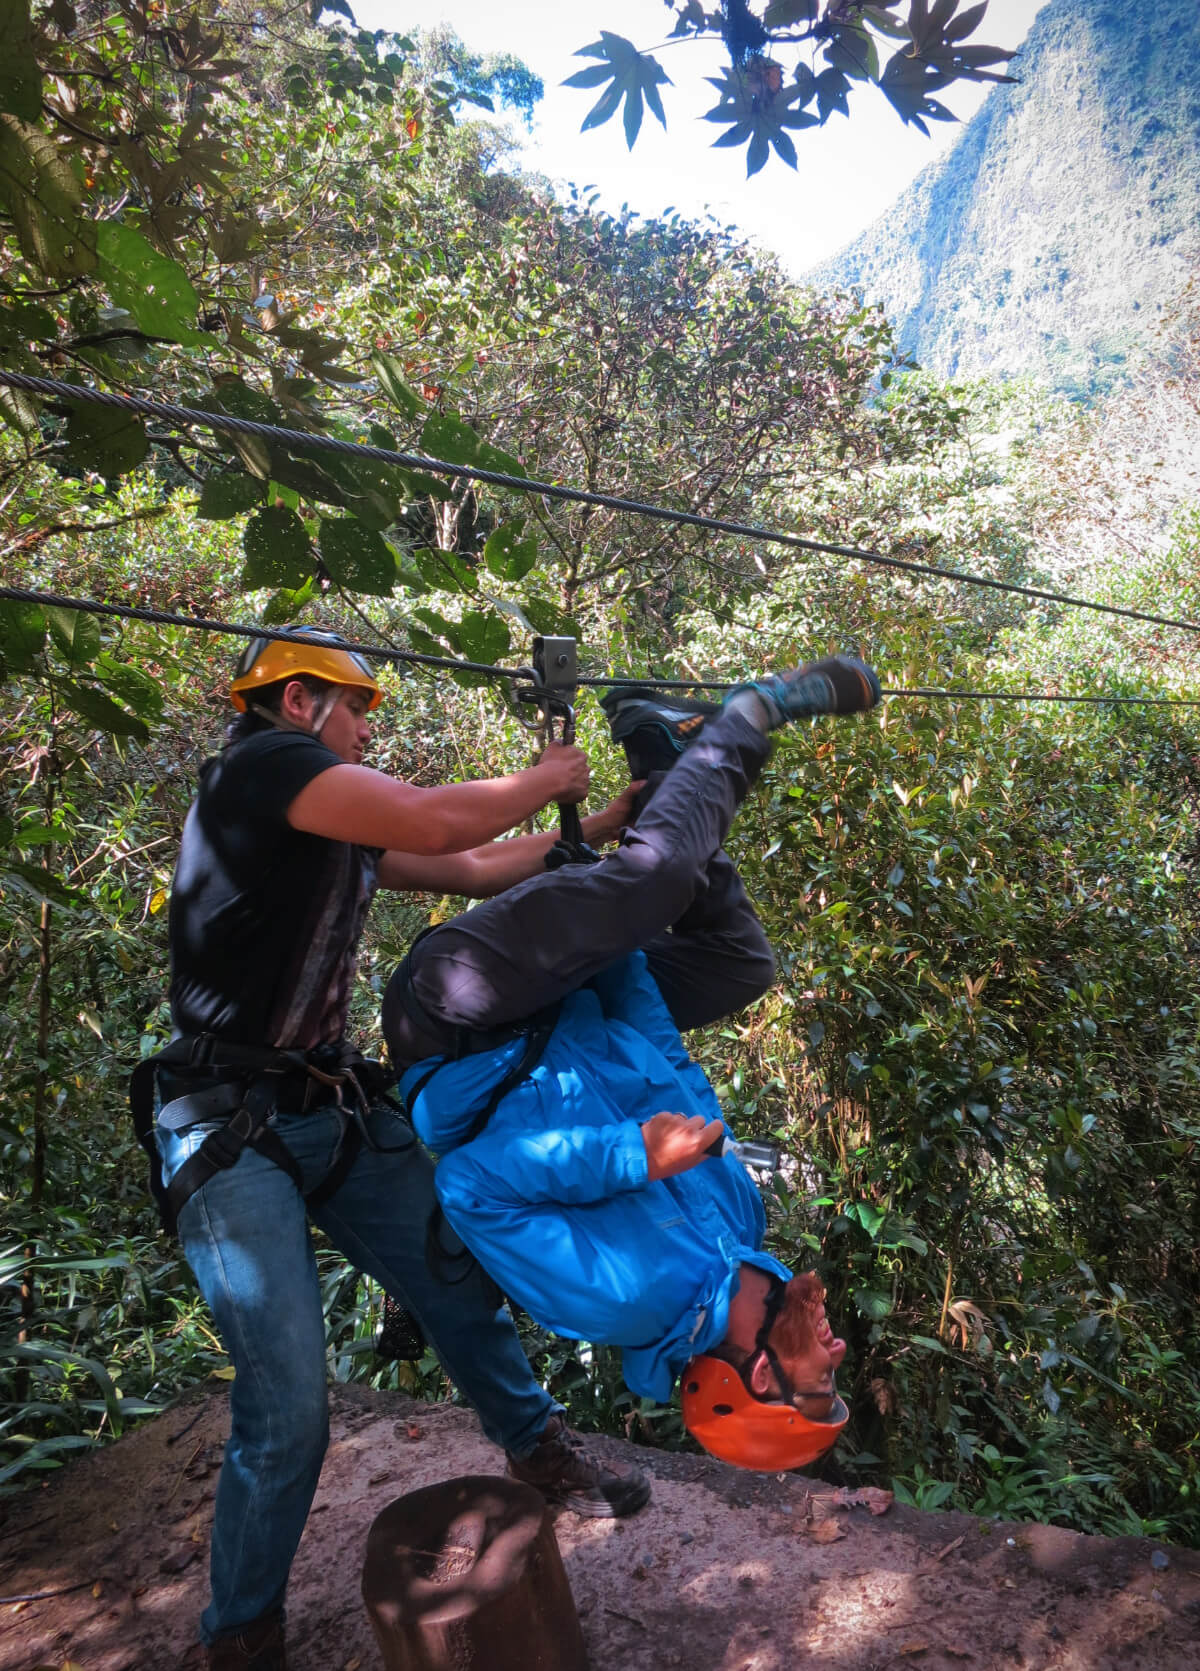 Ziplining upside-down (aka in the Spiderman position) through the mountains in Baños, Ecuador!